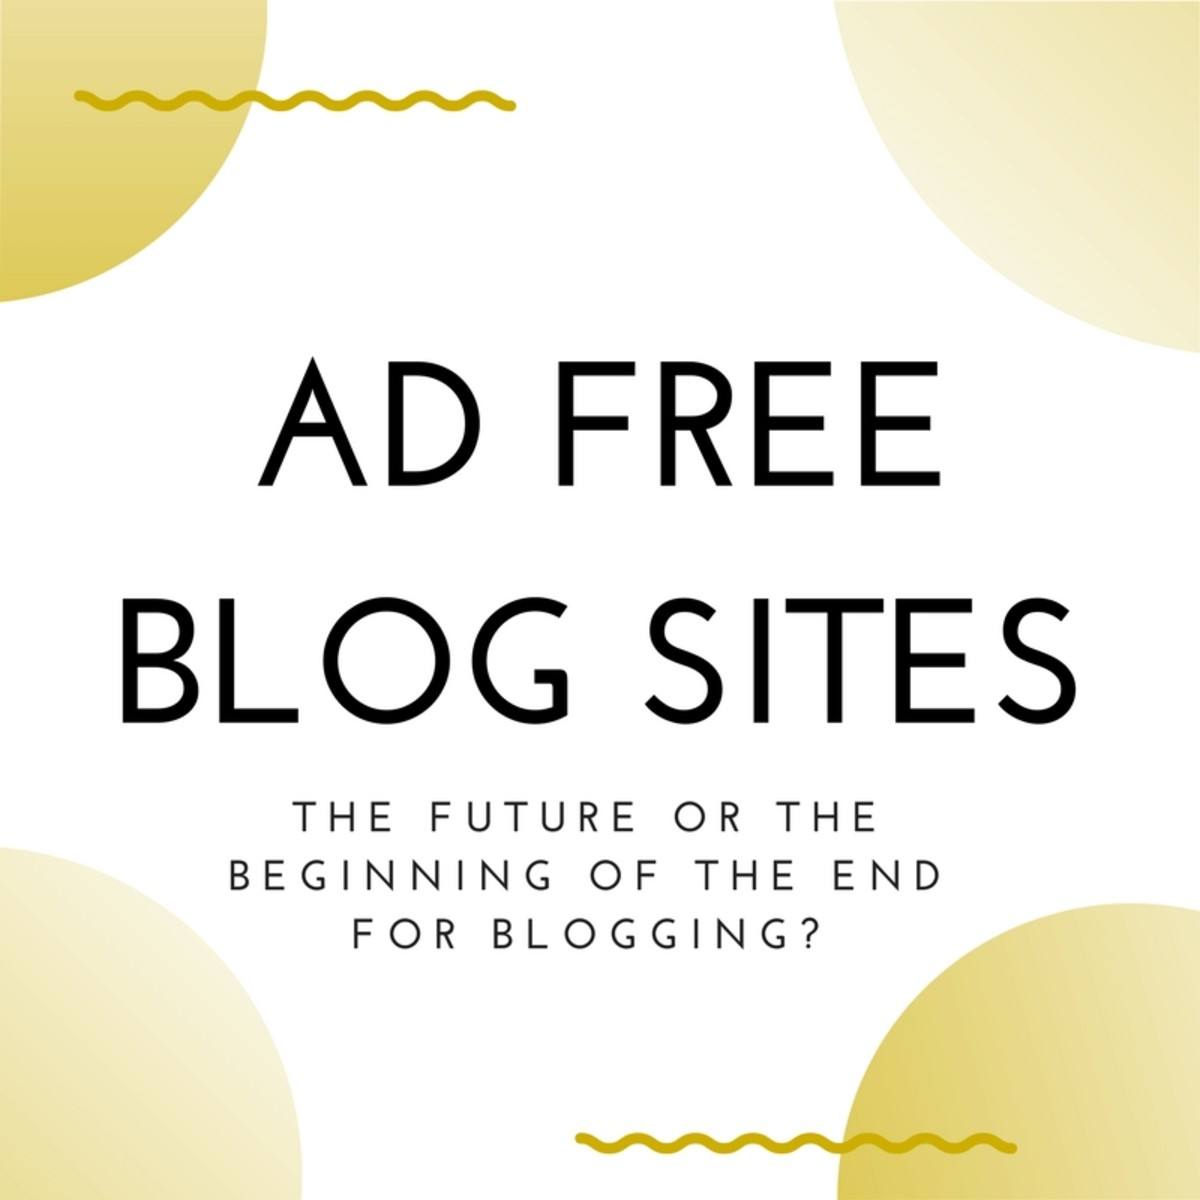 Ad-Free Blog Sites: The Future or the End of Blogging?